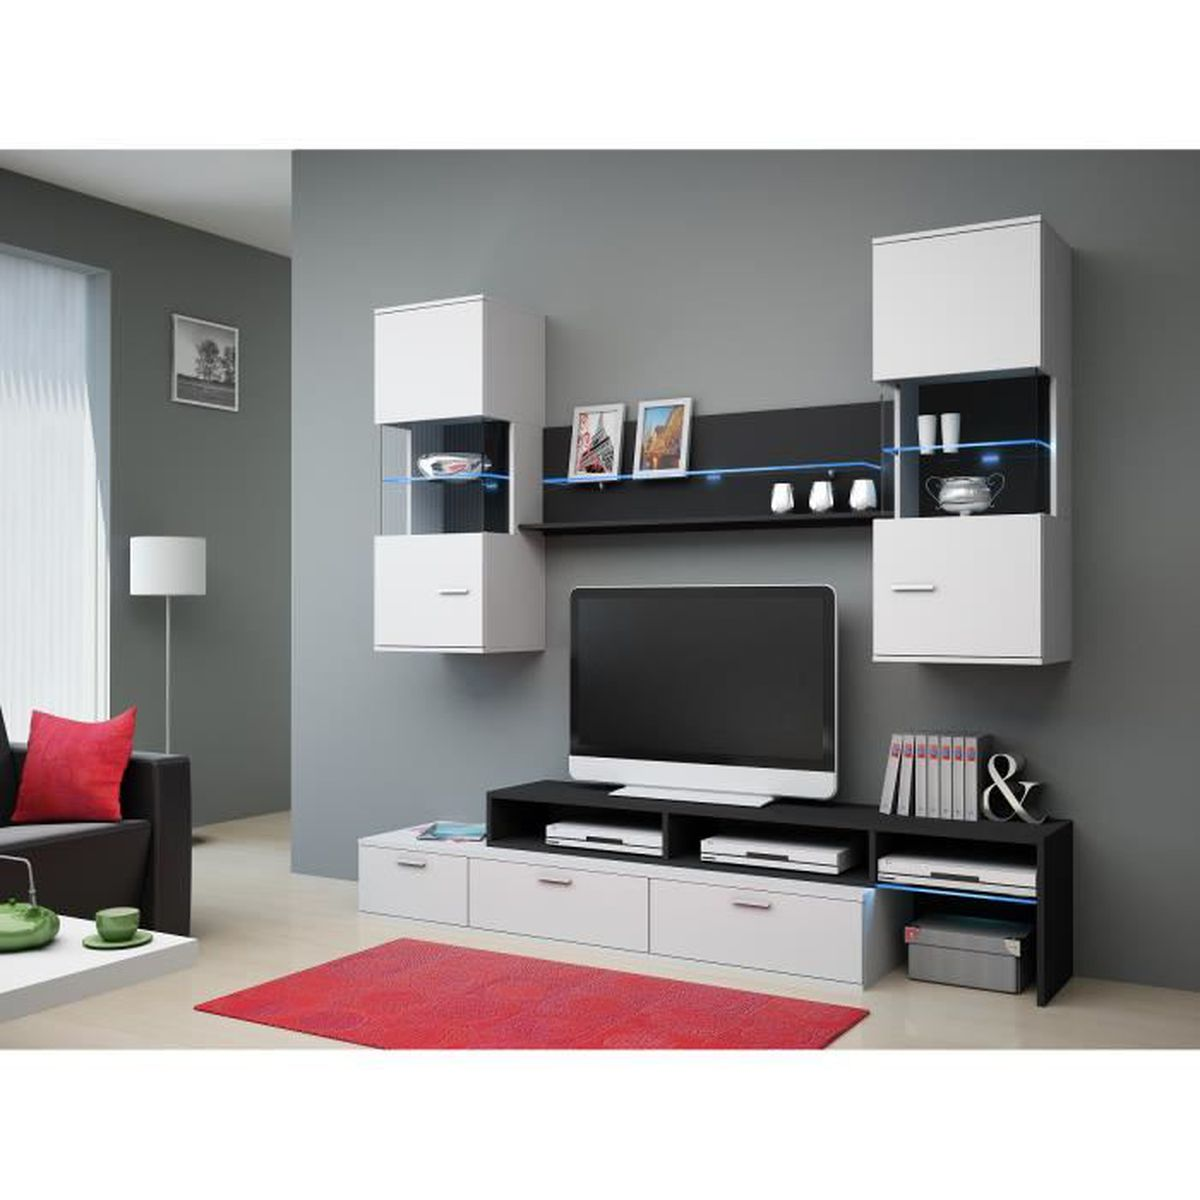 ensemble de meuble tv moderne design domingo achat vente living meuble tv ensemble de. Black Bedroom Furniture Sets. Home Design Ideas